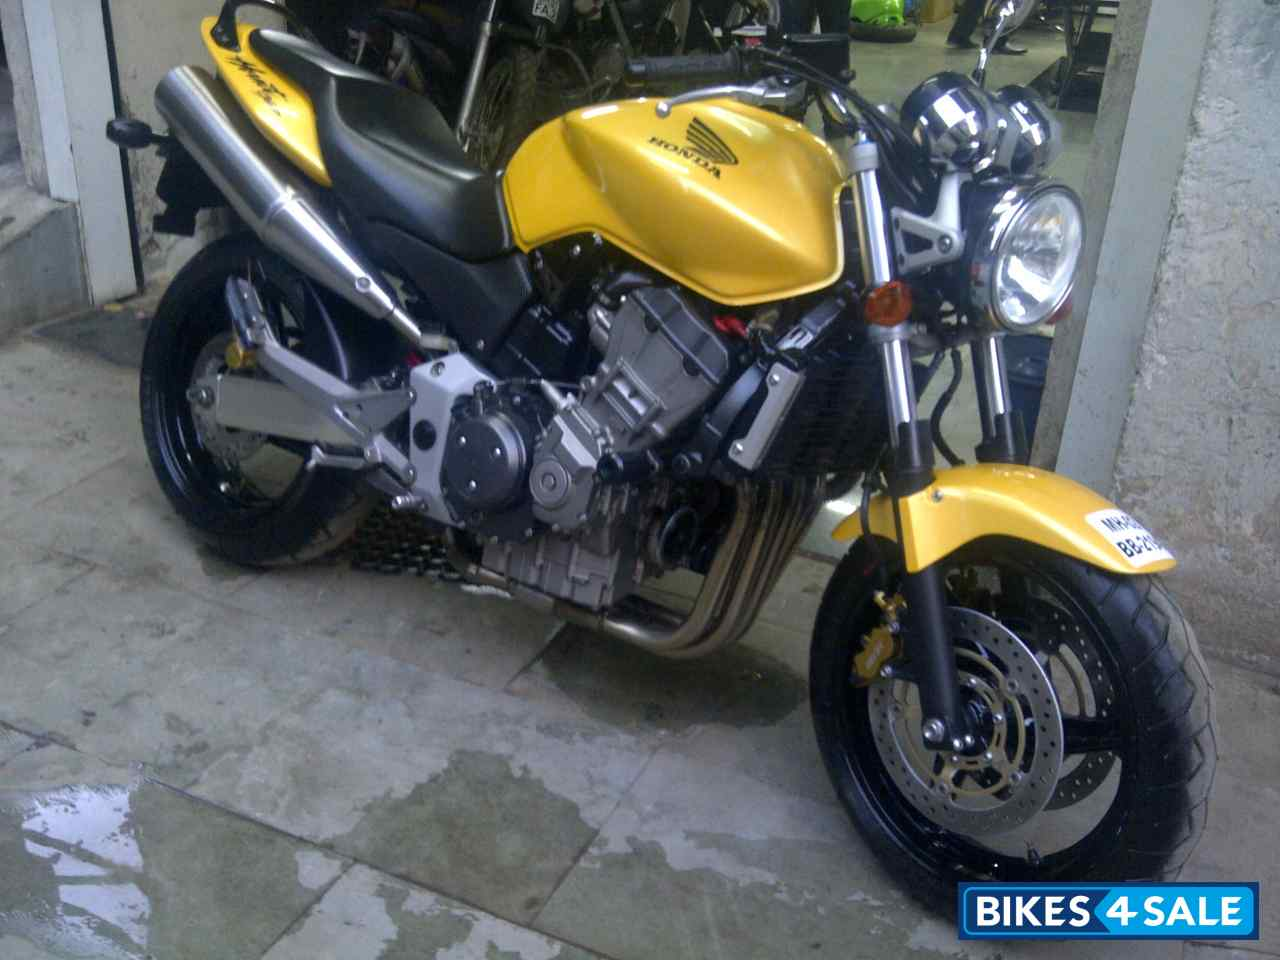 metallic yellow honda hornet 900 picture 3 album id is 75097 bike located in mumbai bikes4sale. Black Bedroom Furniture Sets. Home Design Ideas